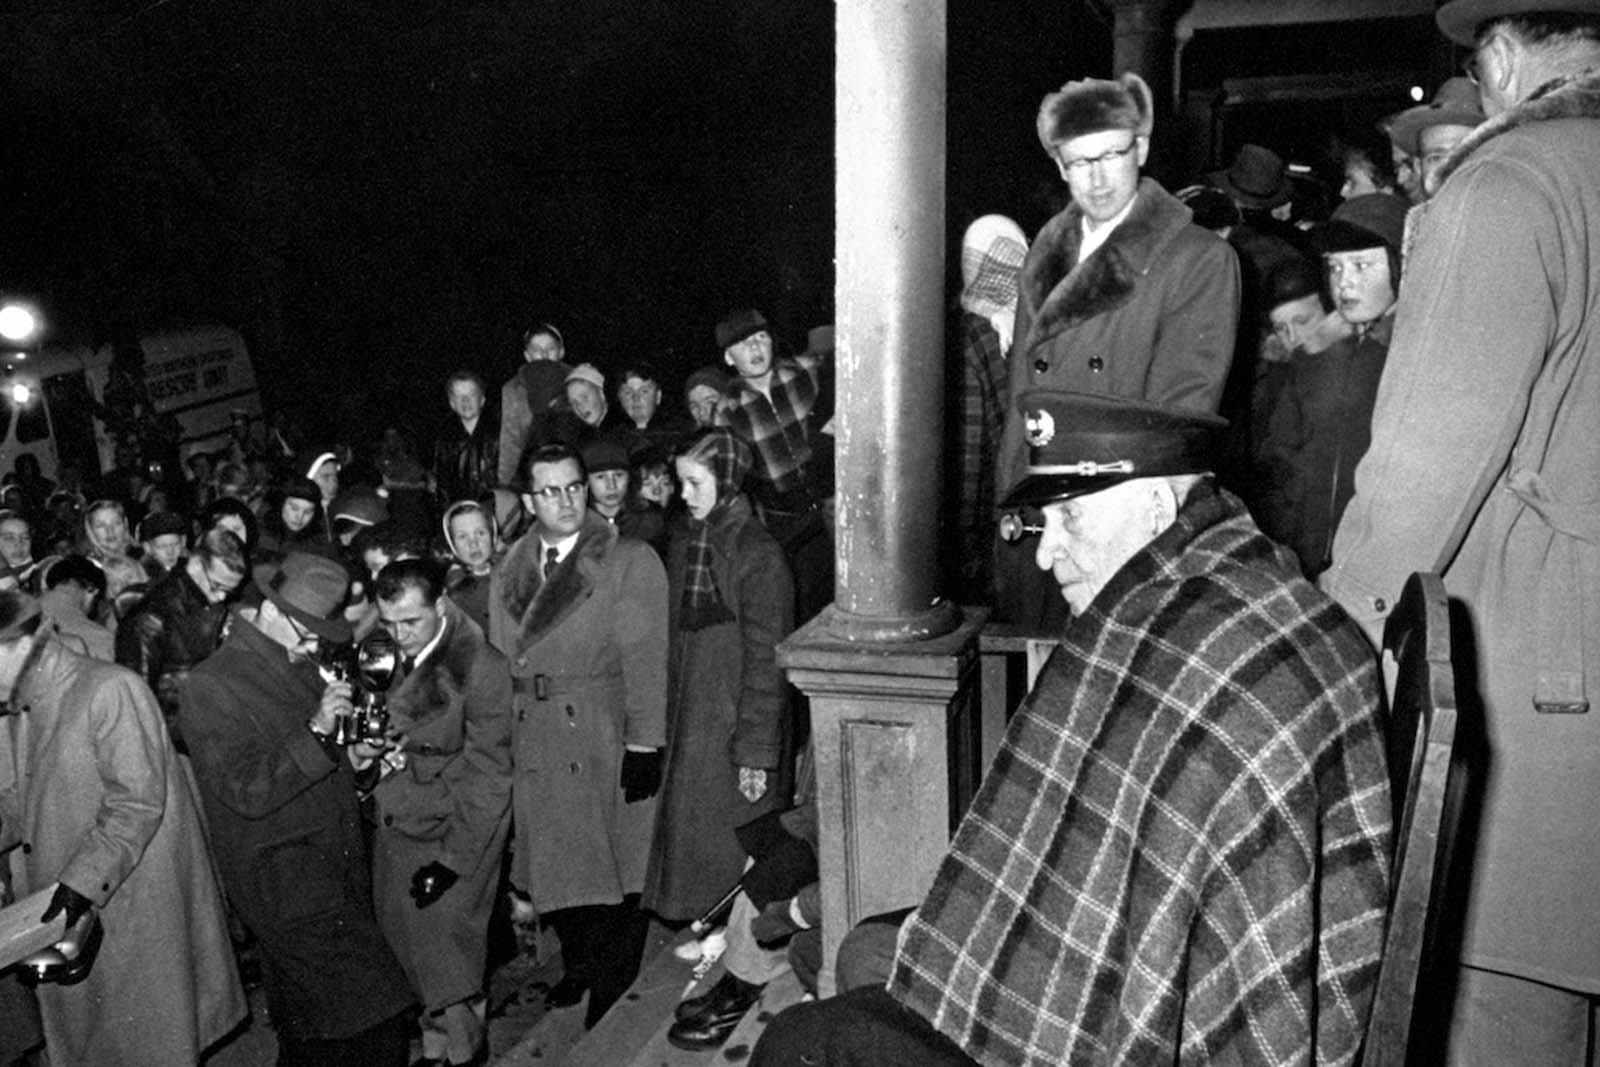 107 years old last remaining Grand Army of the Republic (GAR) Civil War Veteran Albert Woolson (seated) sitting in the front porch wearing a military hat and blanket while people and photographers are passing by. 1954.